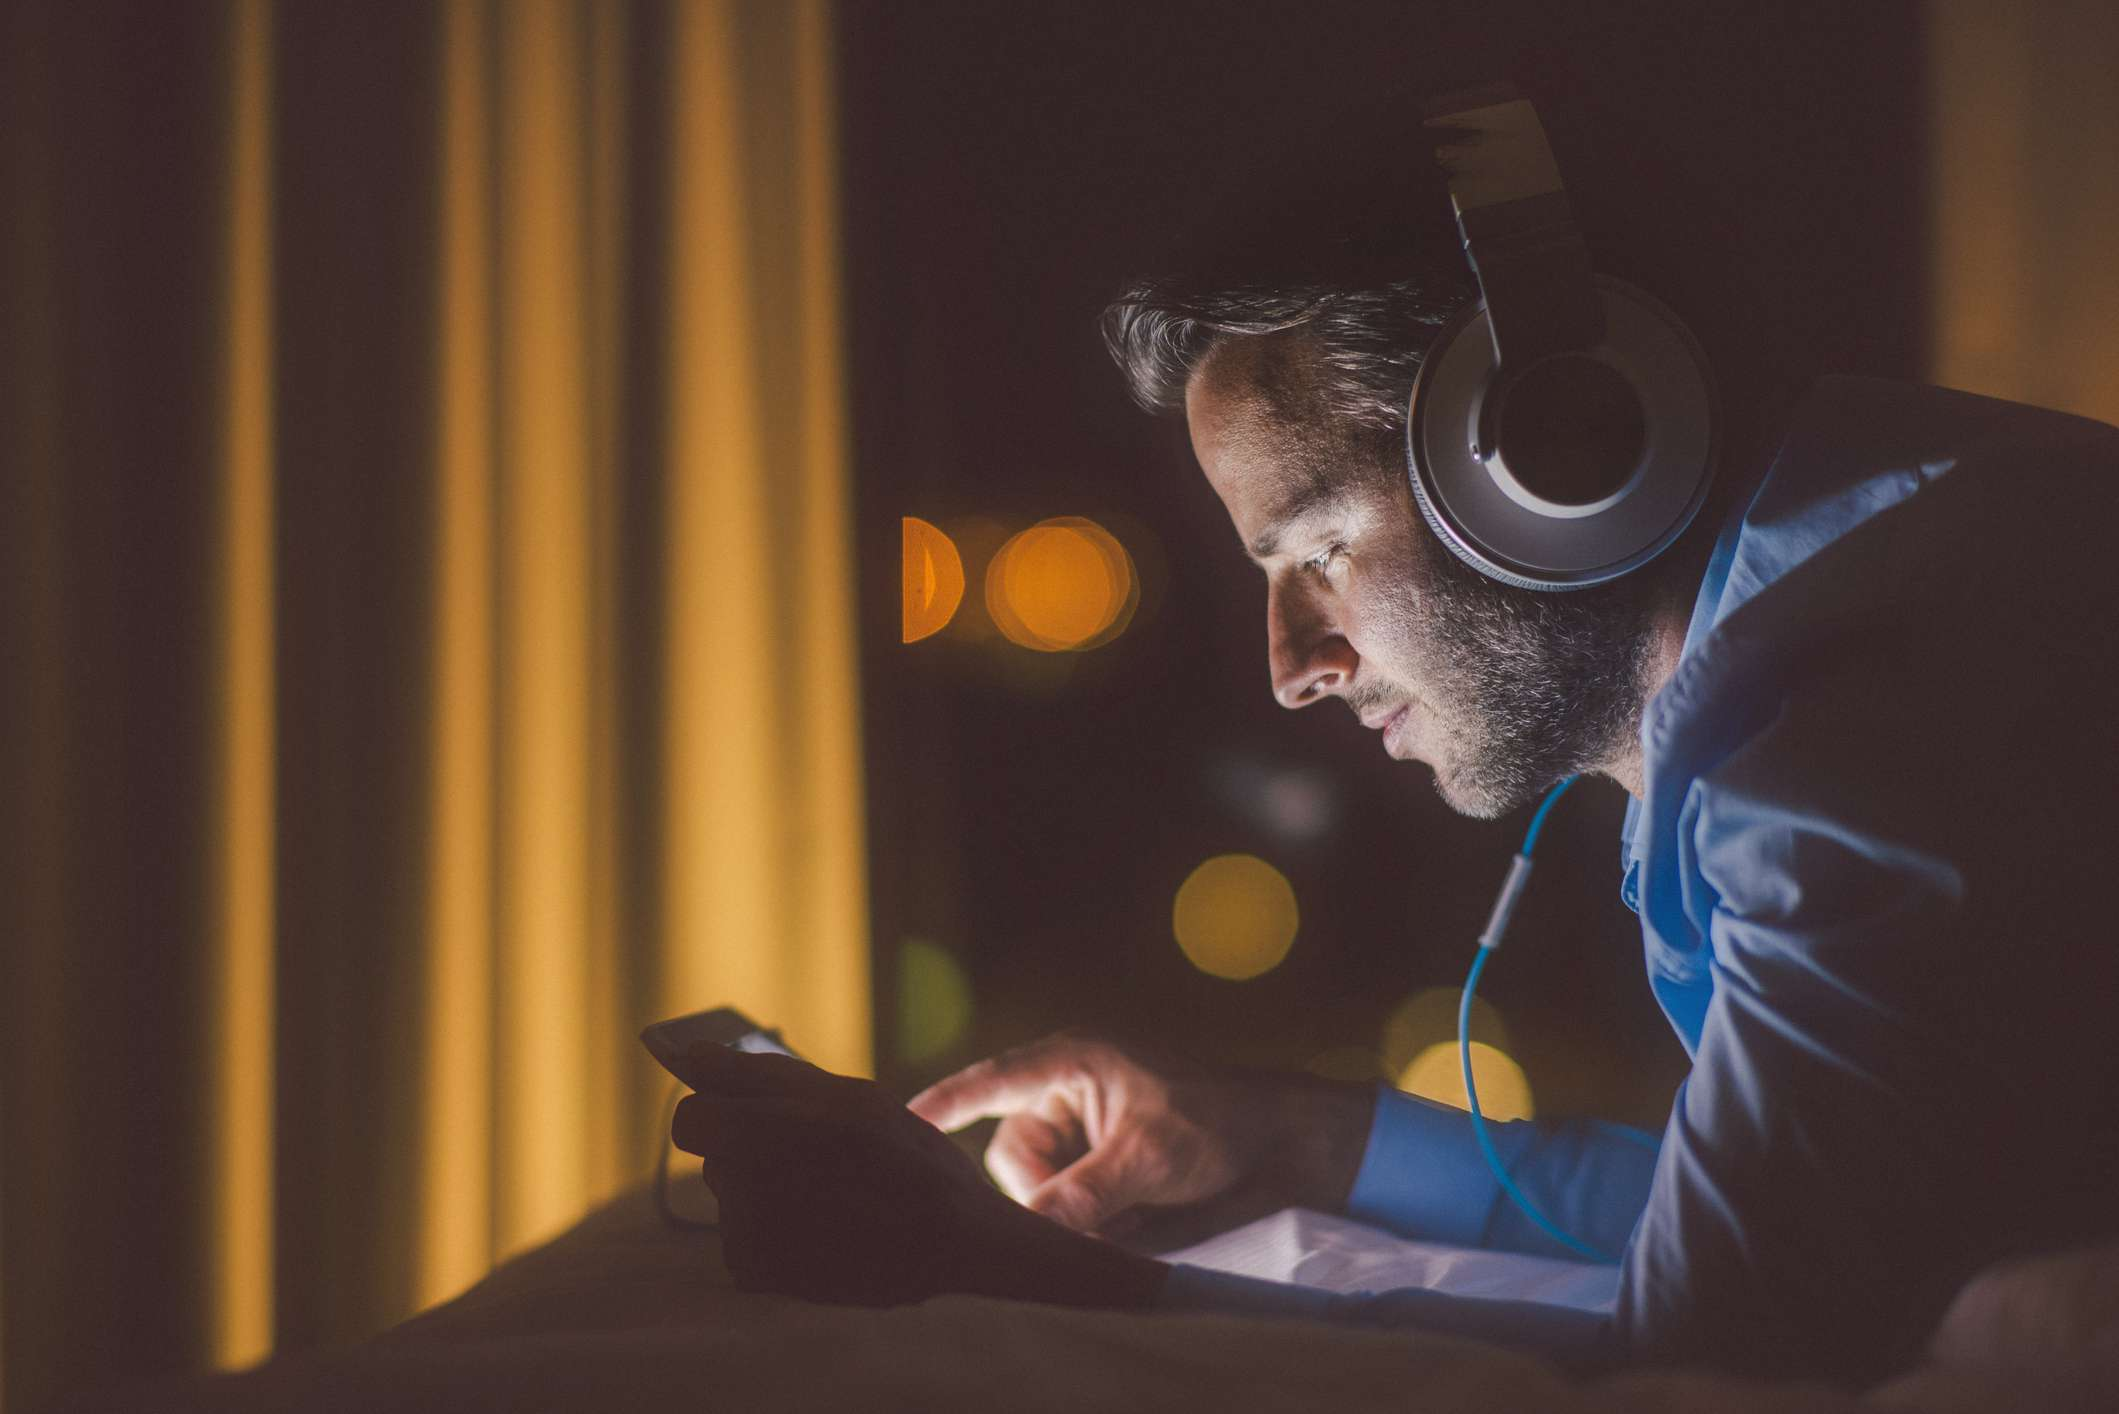 Someone using a tablet PC with headphones in a dark room.